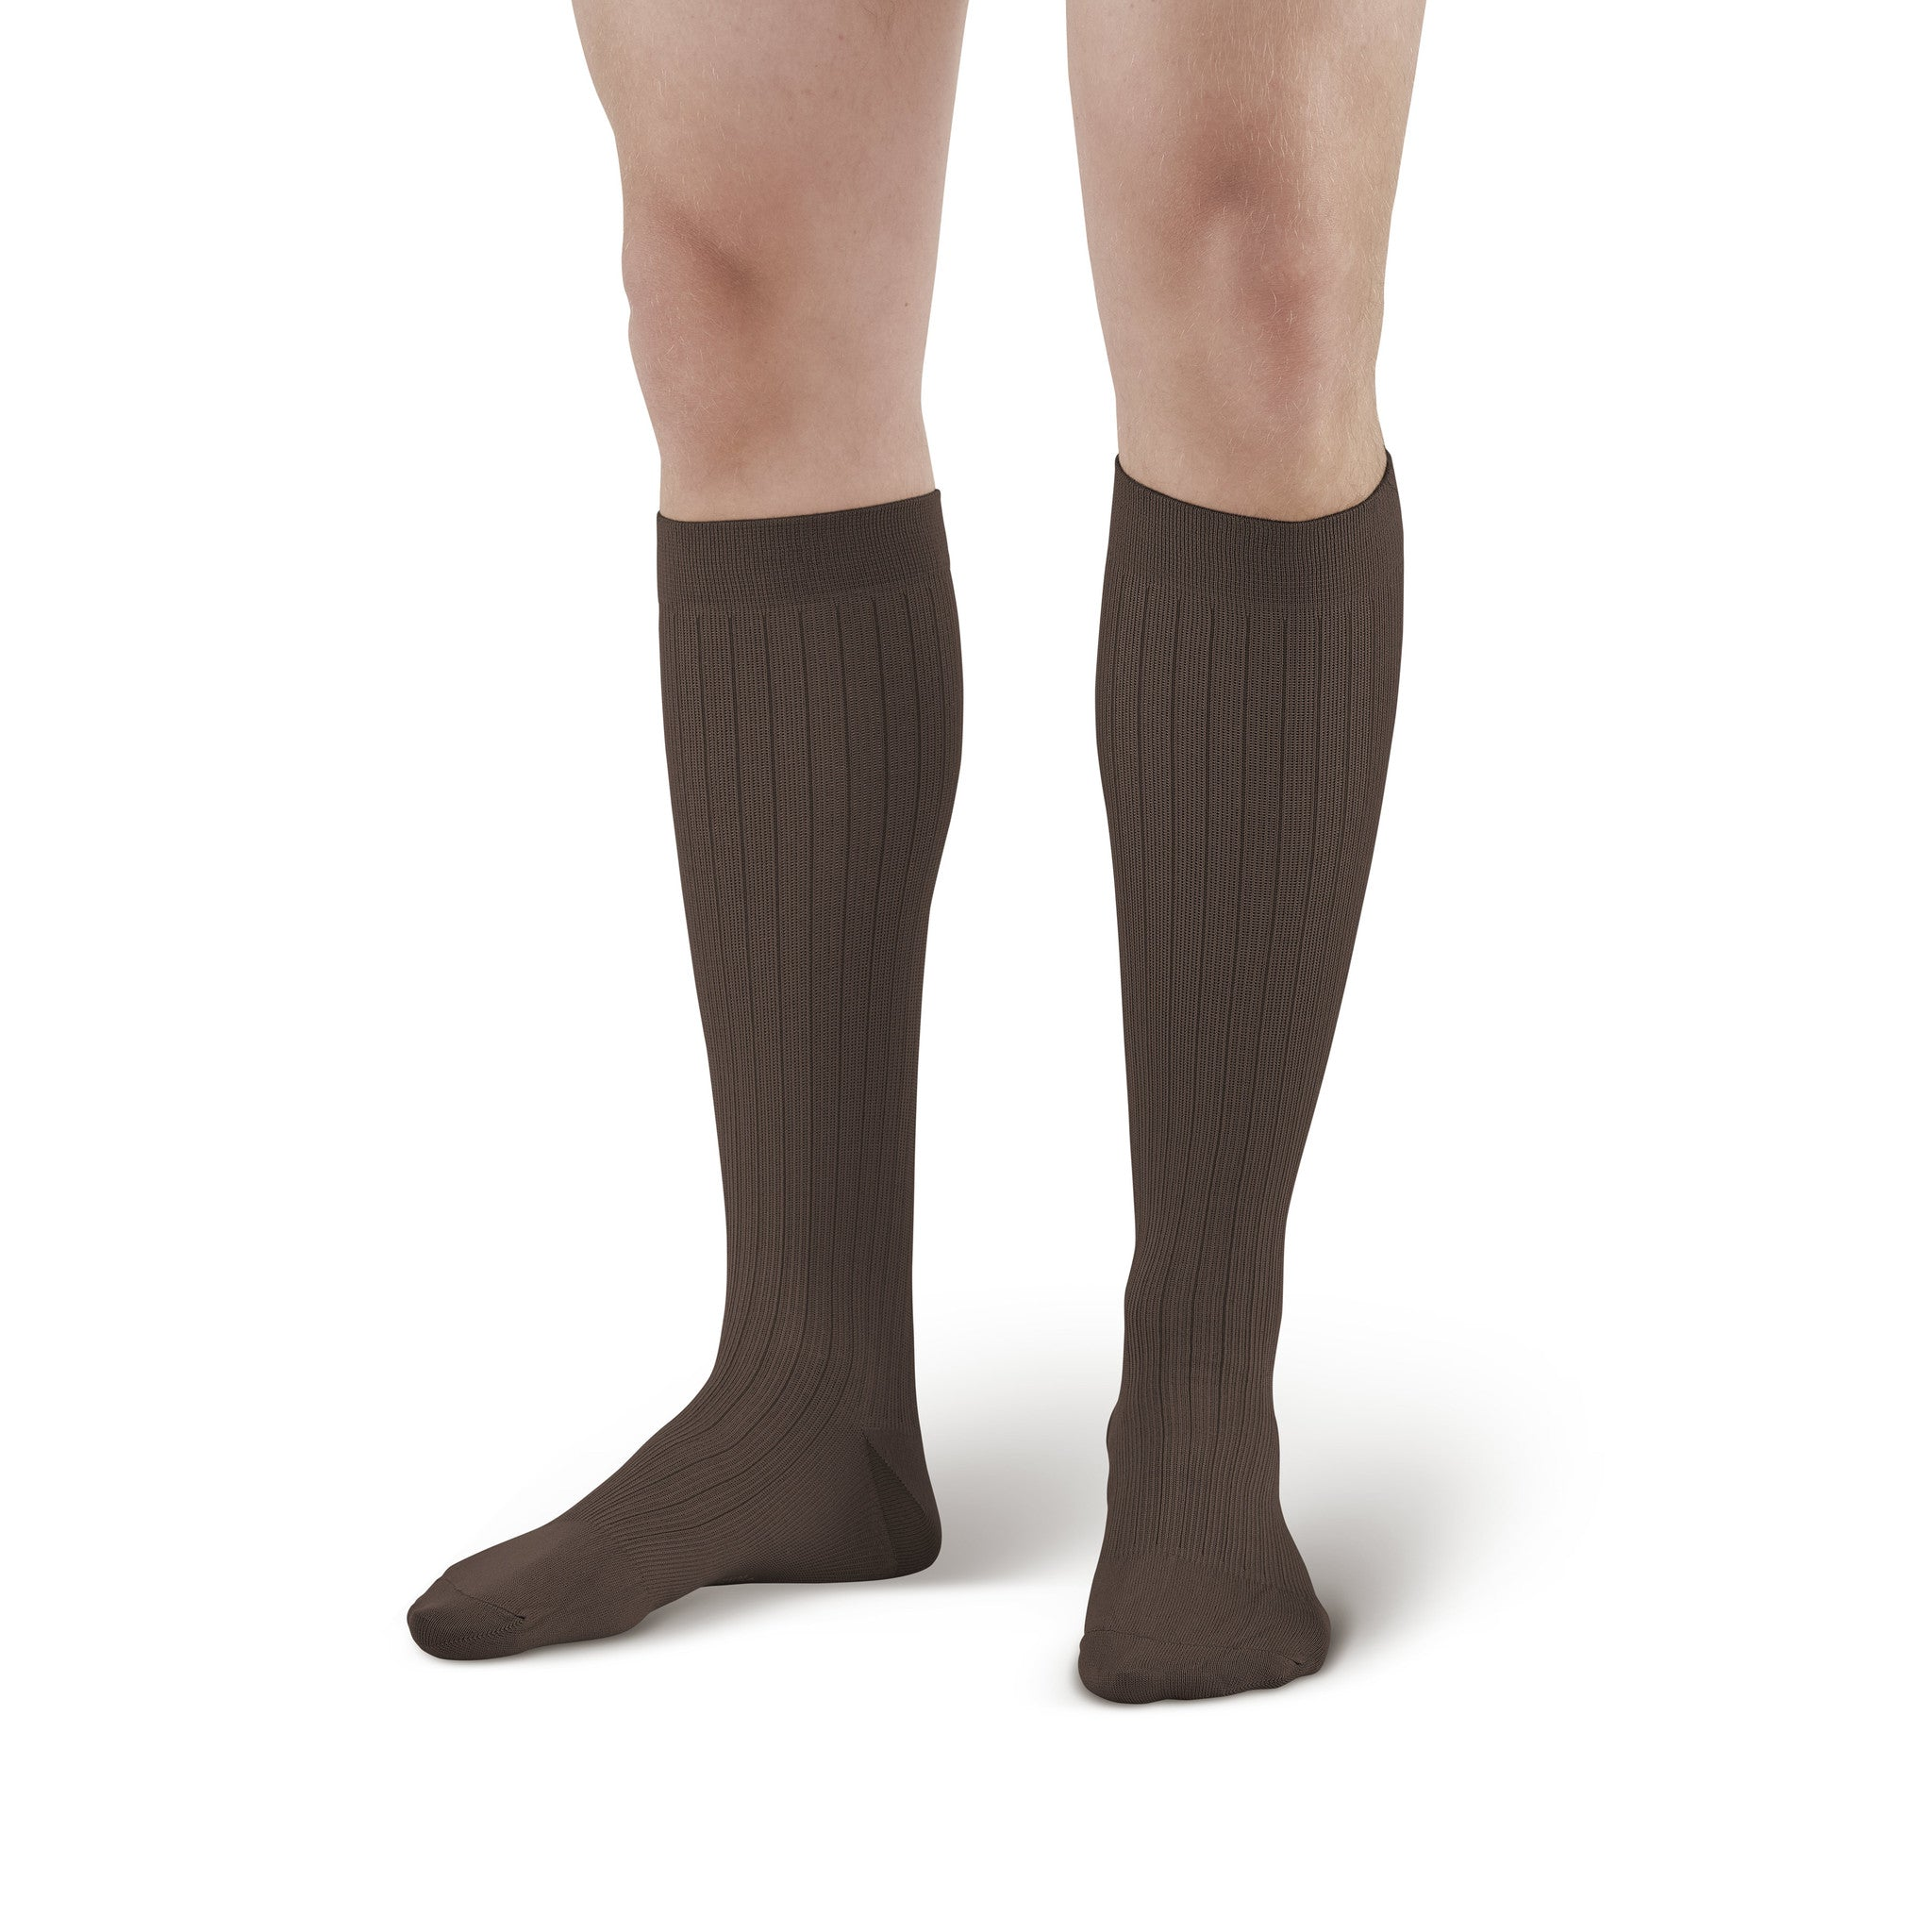 f51543fe09730 Ames Walker Men's Compression Sock Support l Low Price Guarantee